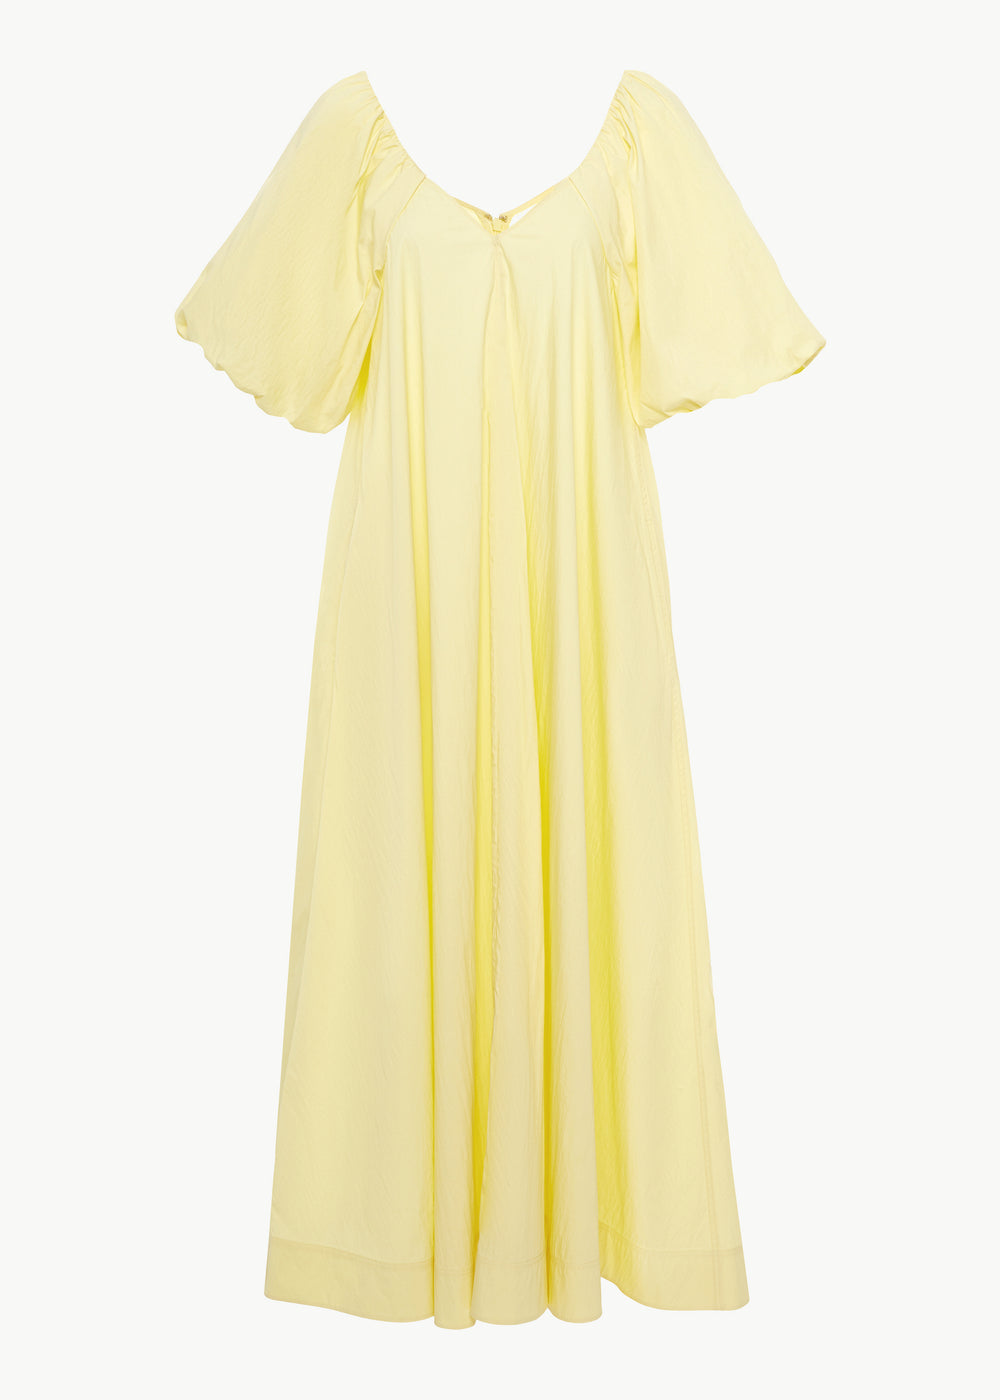 Bubble Sleeve Dress in Cotton Nylon - Yellow - CO